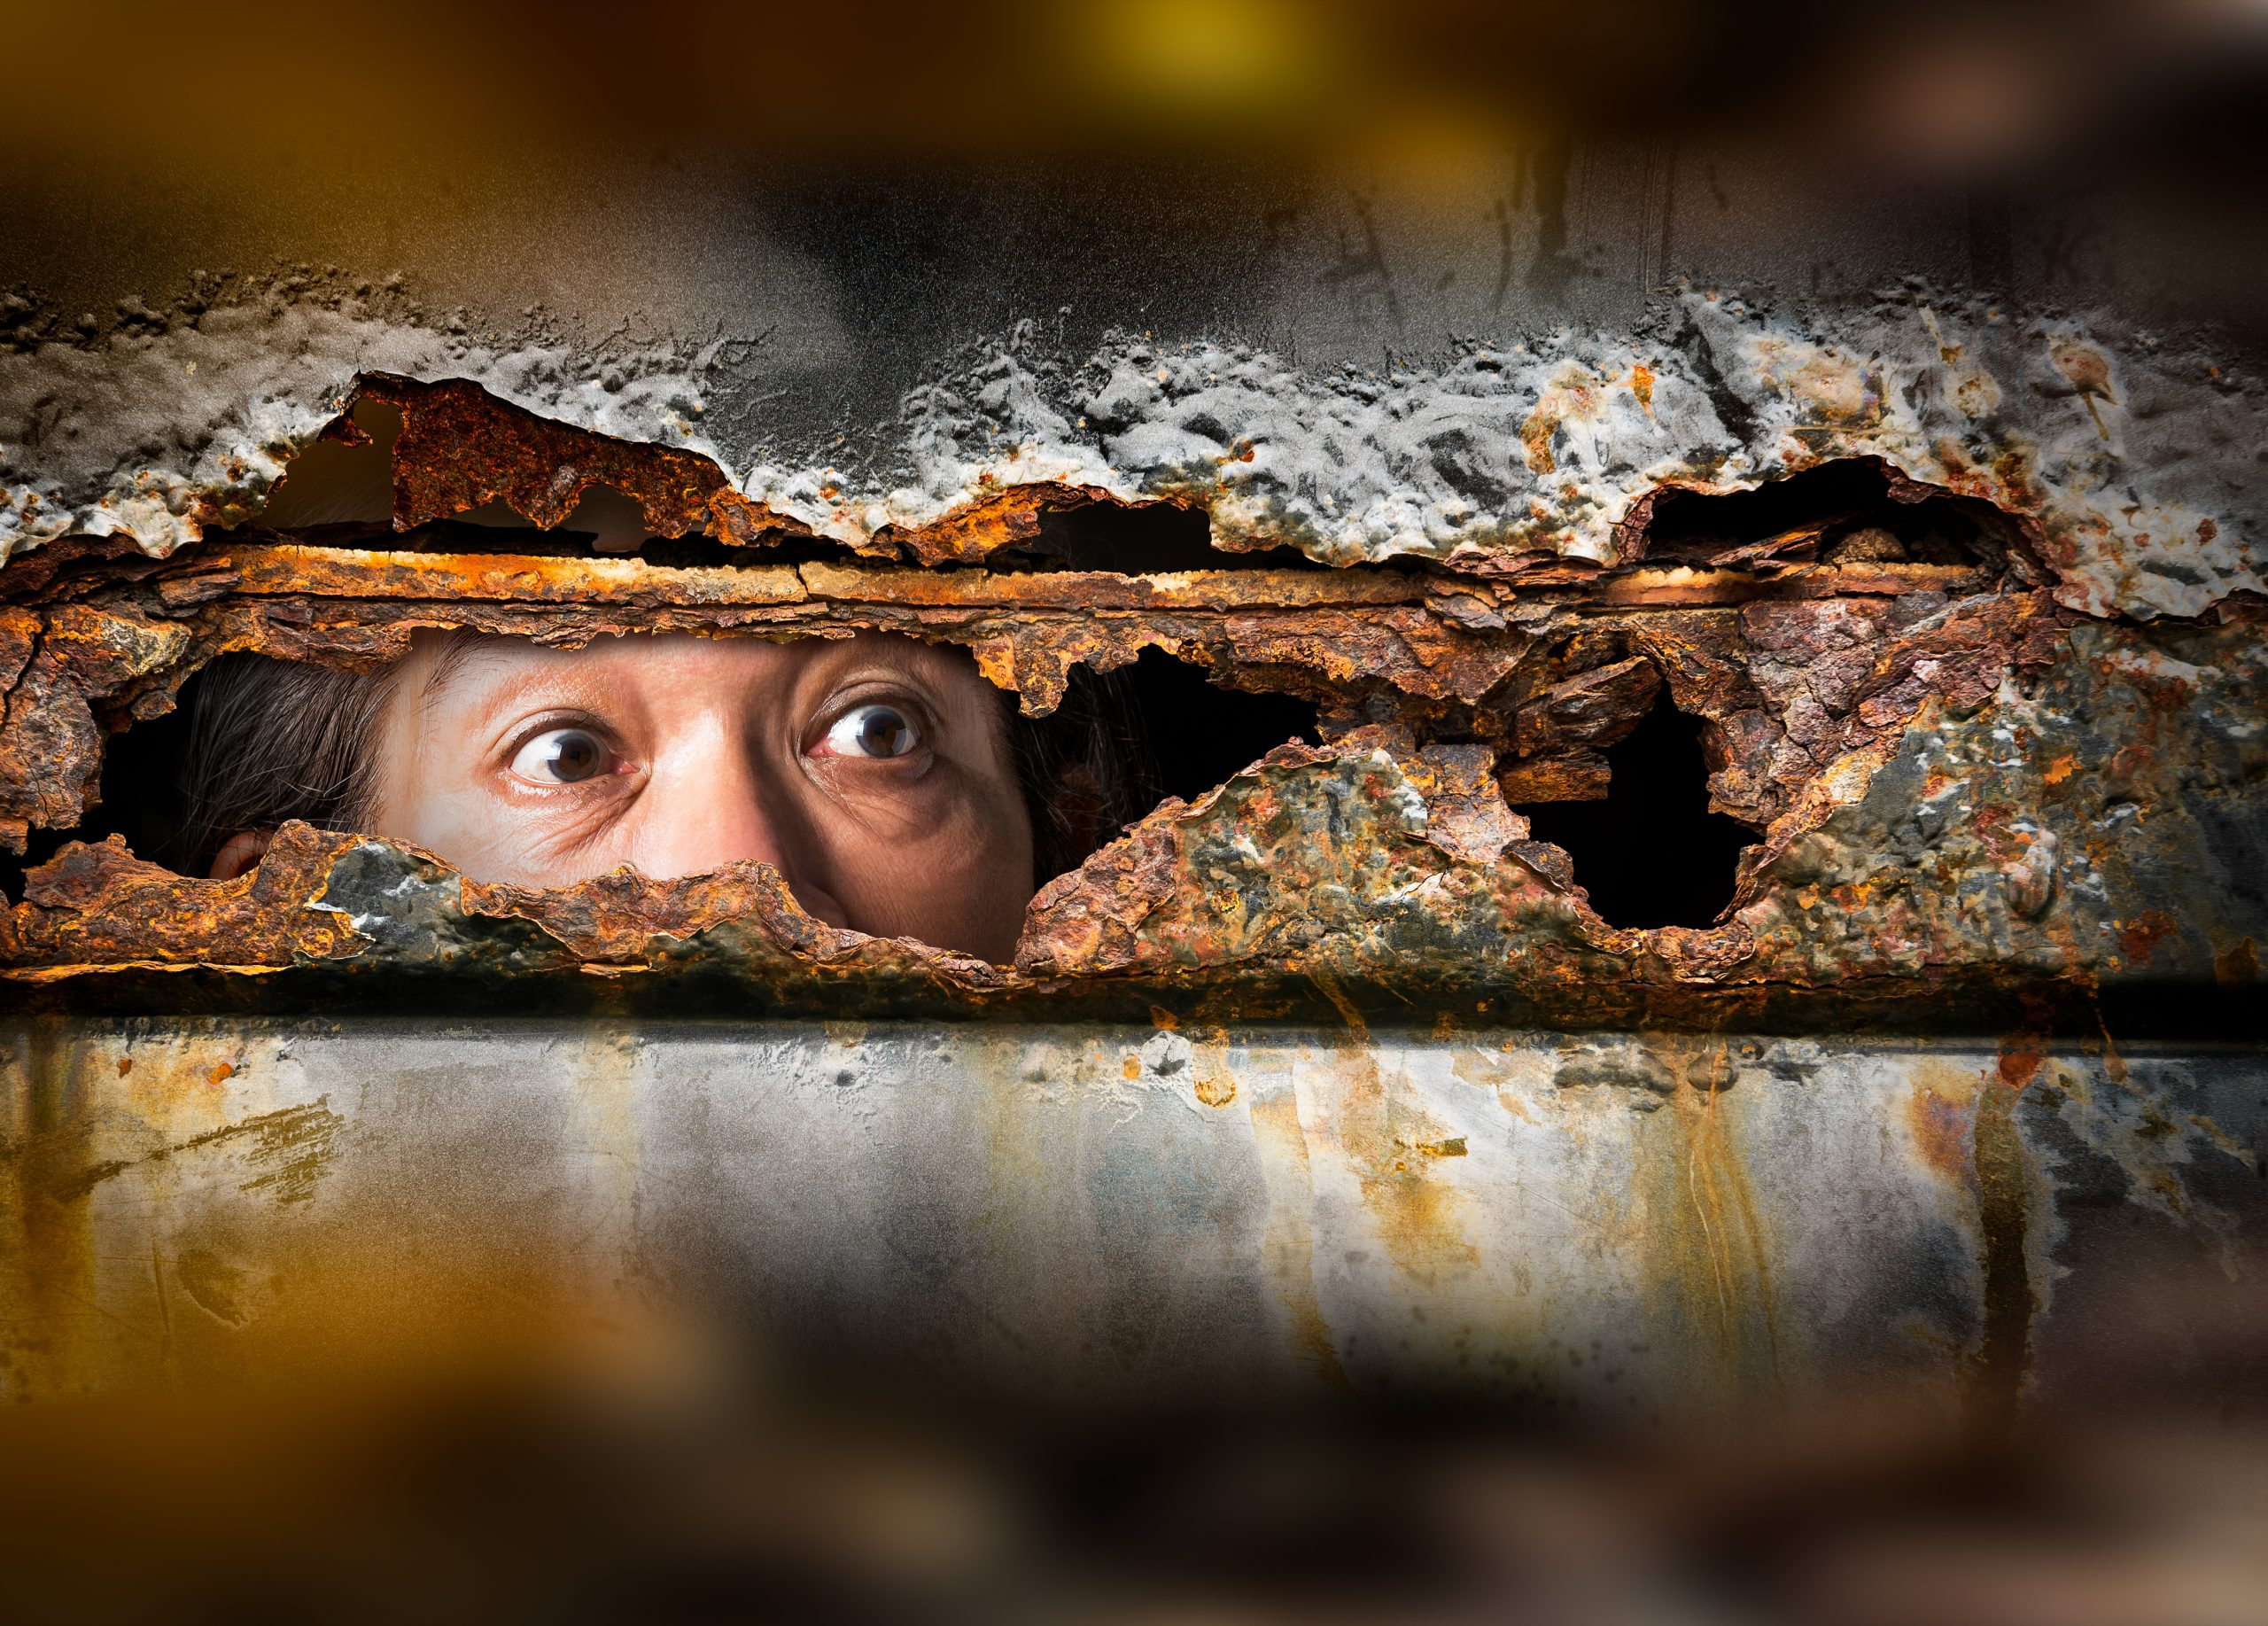 A pair of eyes peering through a rusted through piece of metal